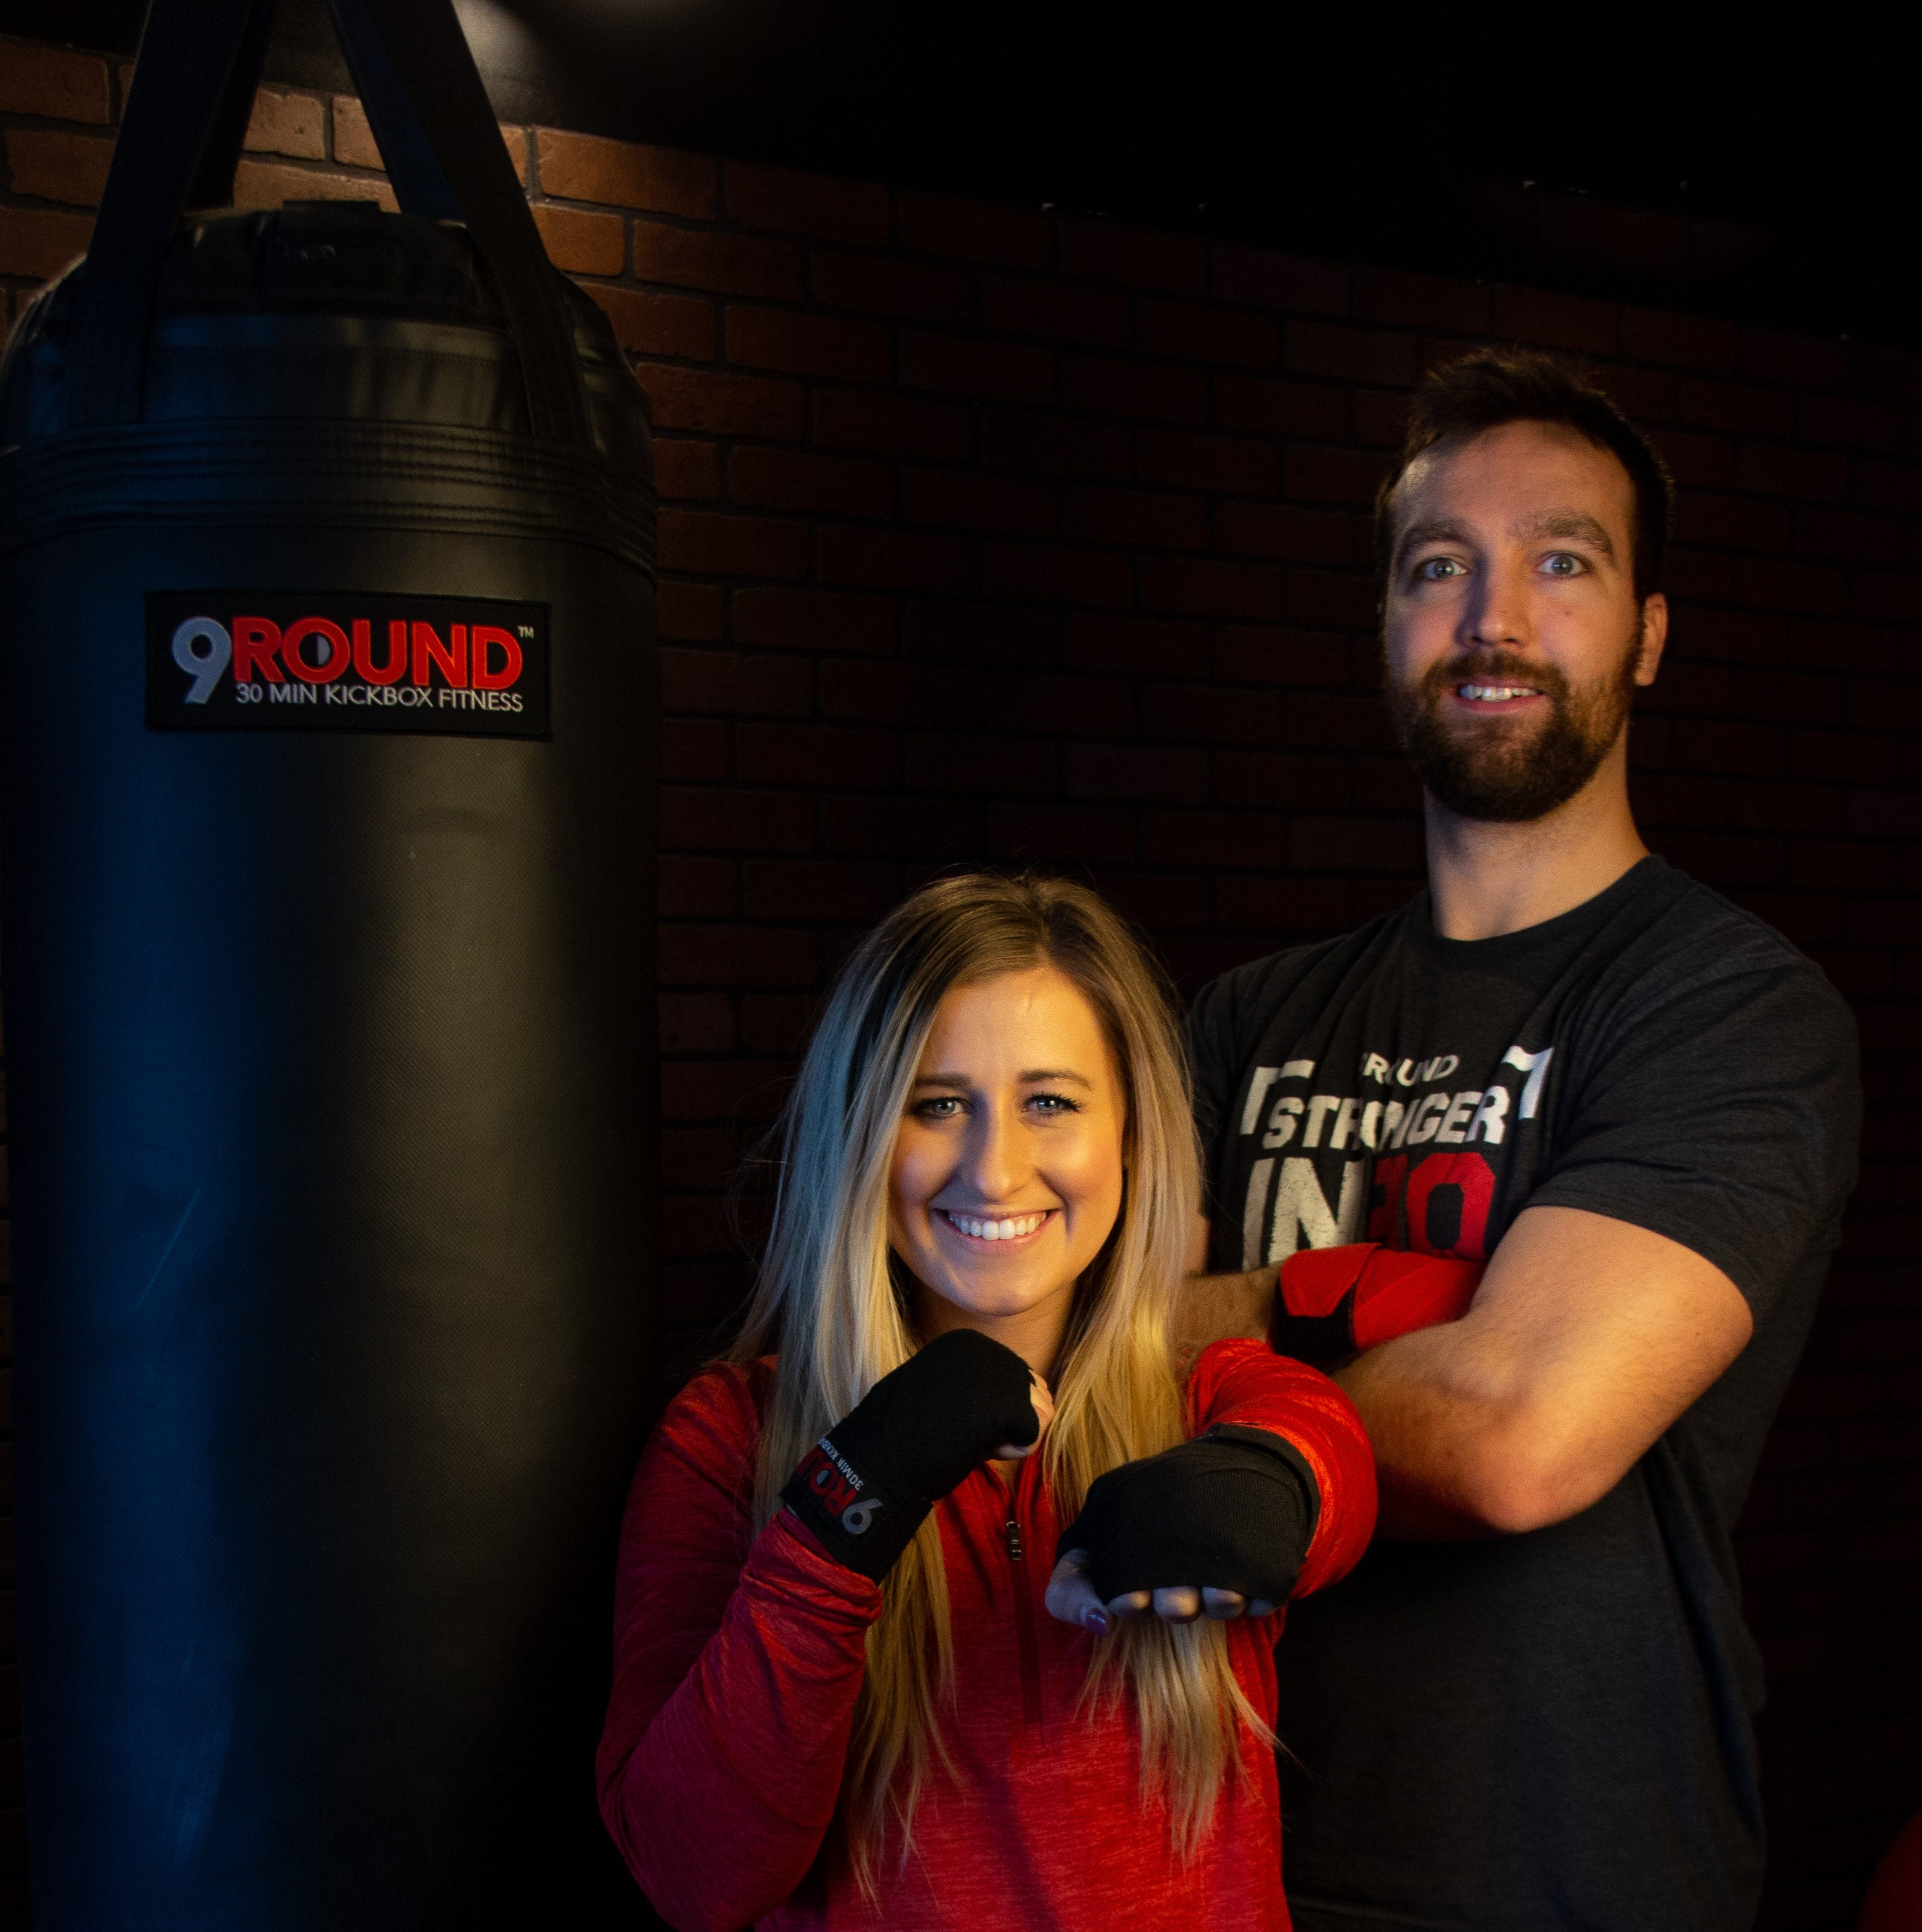 Oshkosh husband and wife open 9Round gym offering intense, 30-minute workouts | Streetwise